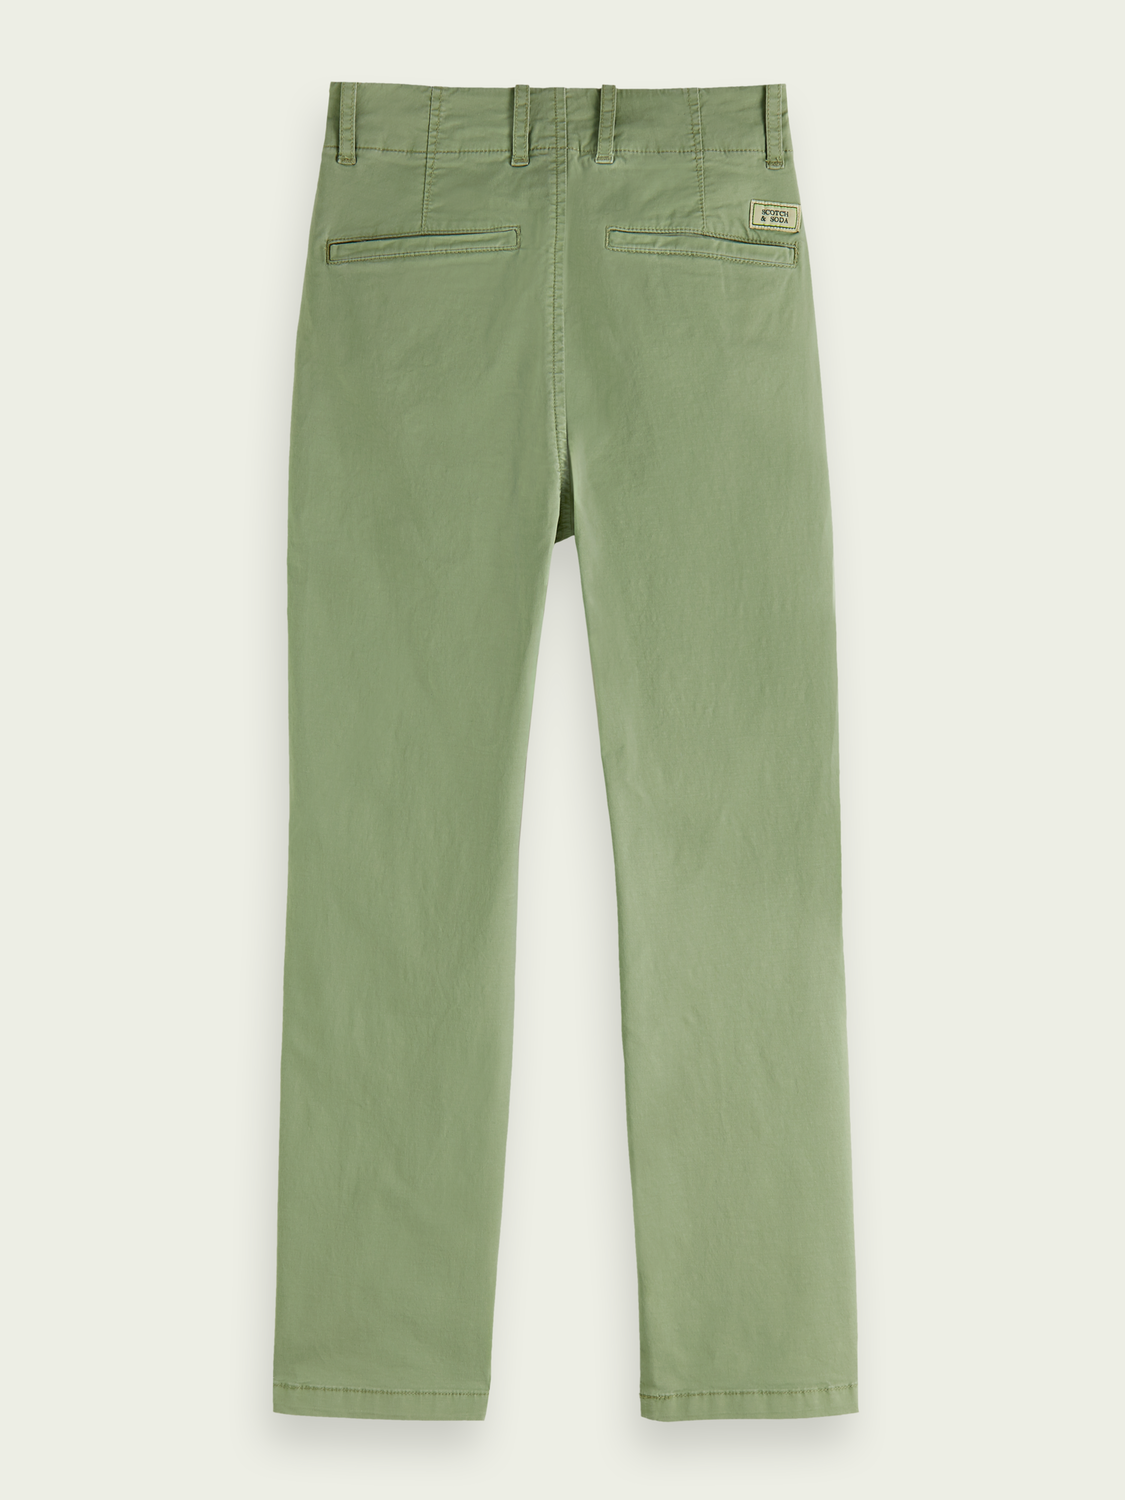 Kinder Chino im Loose Tapered Fit aus Baumwolle – Sea Foam